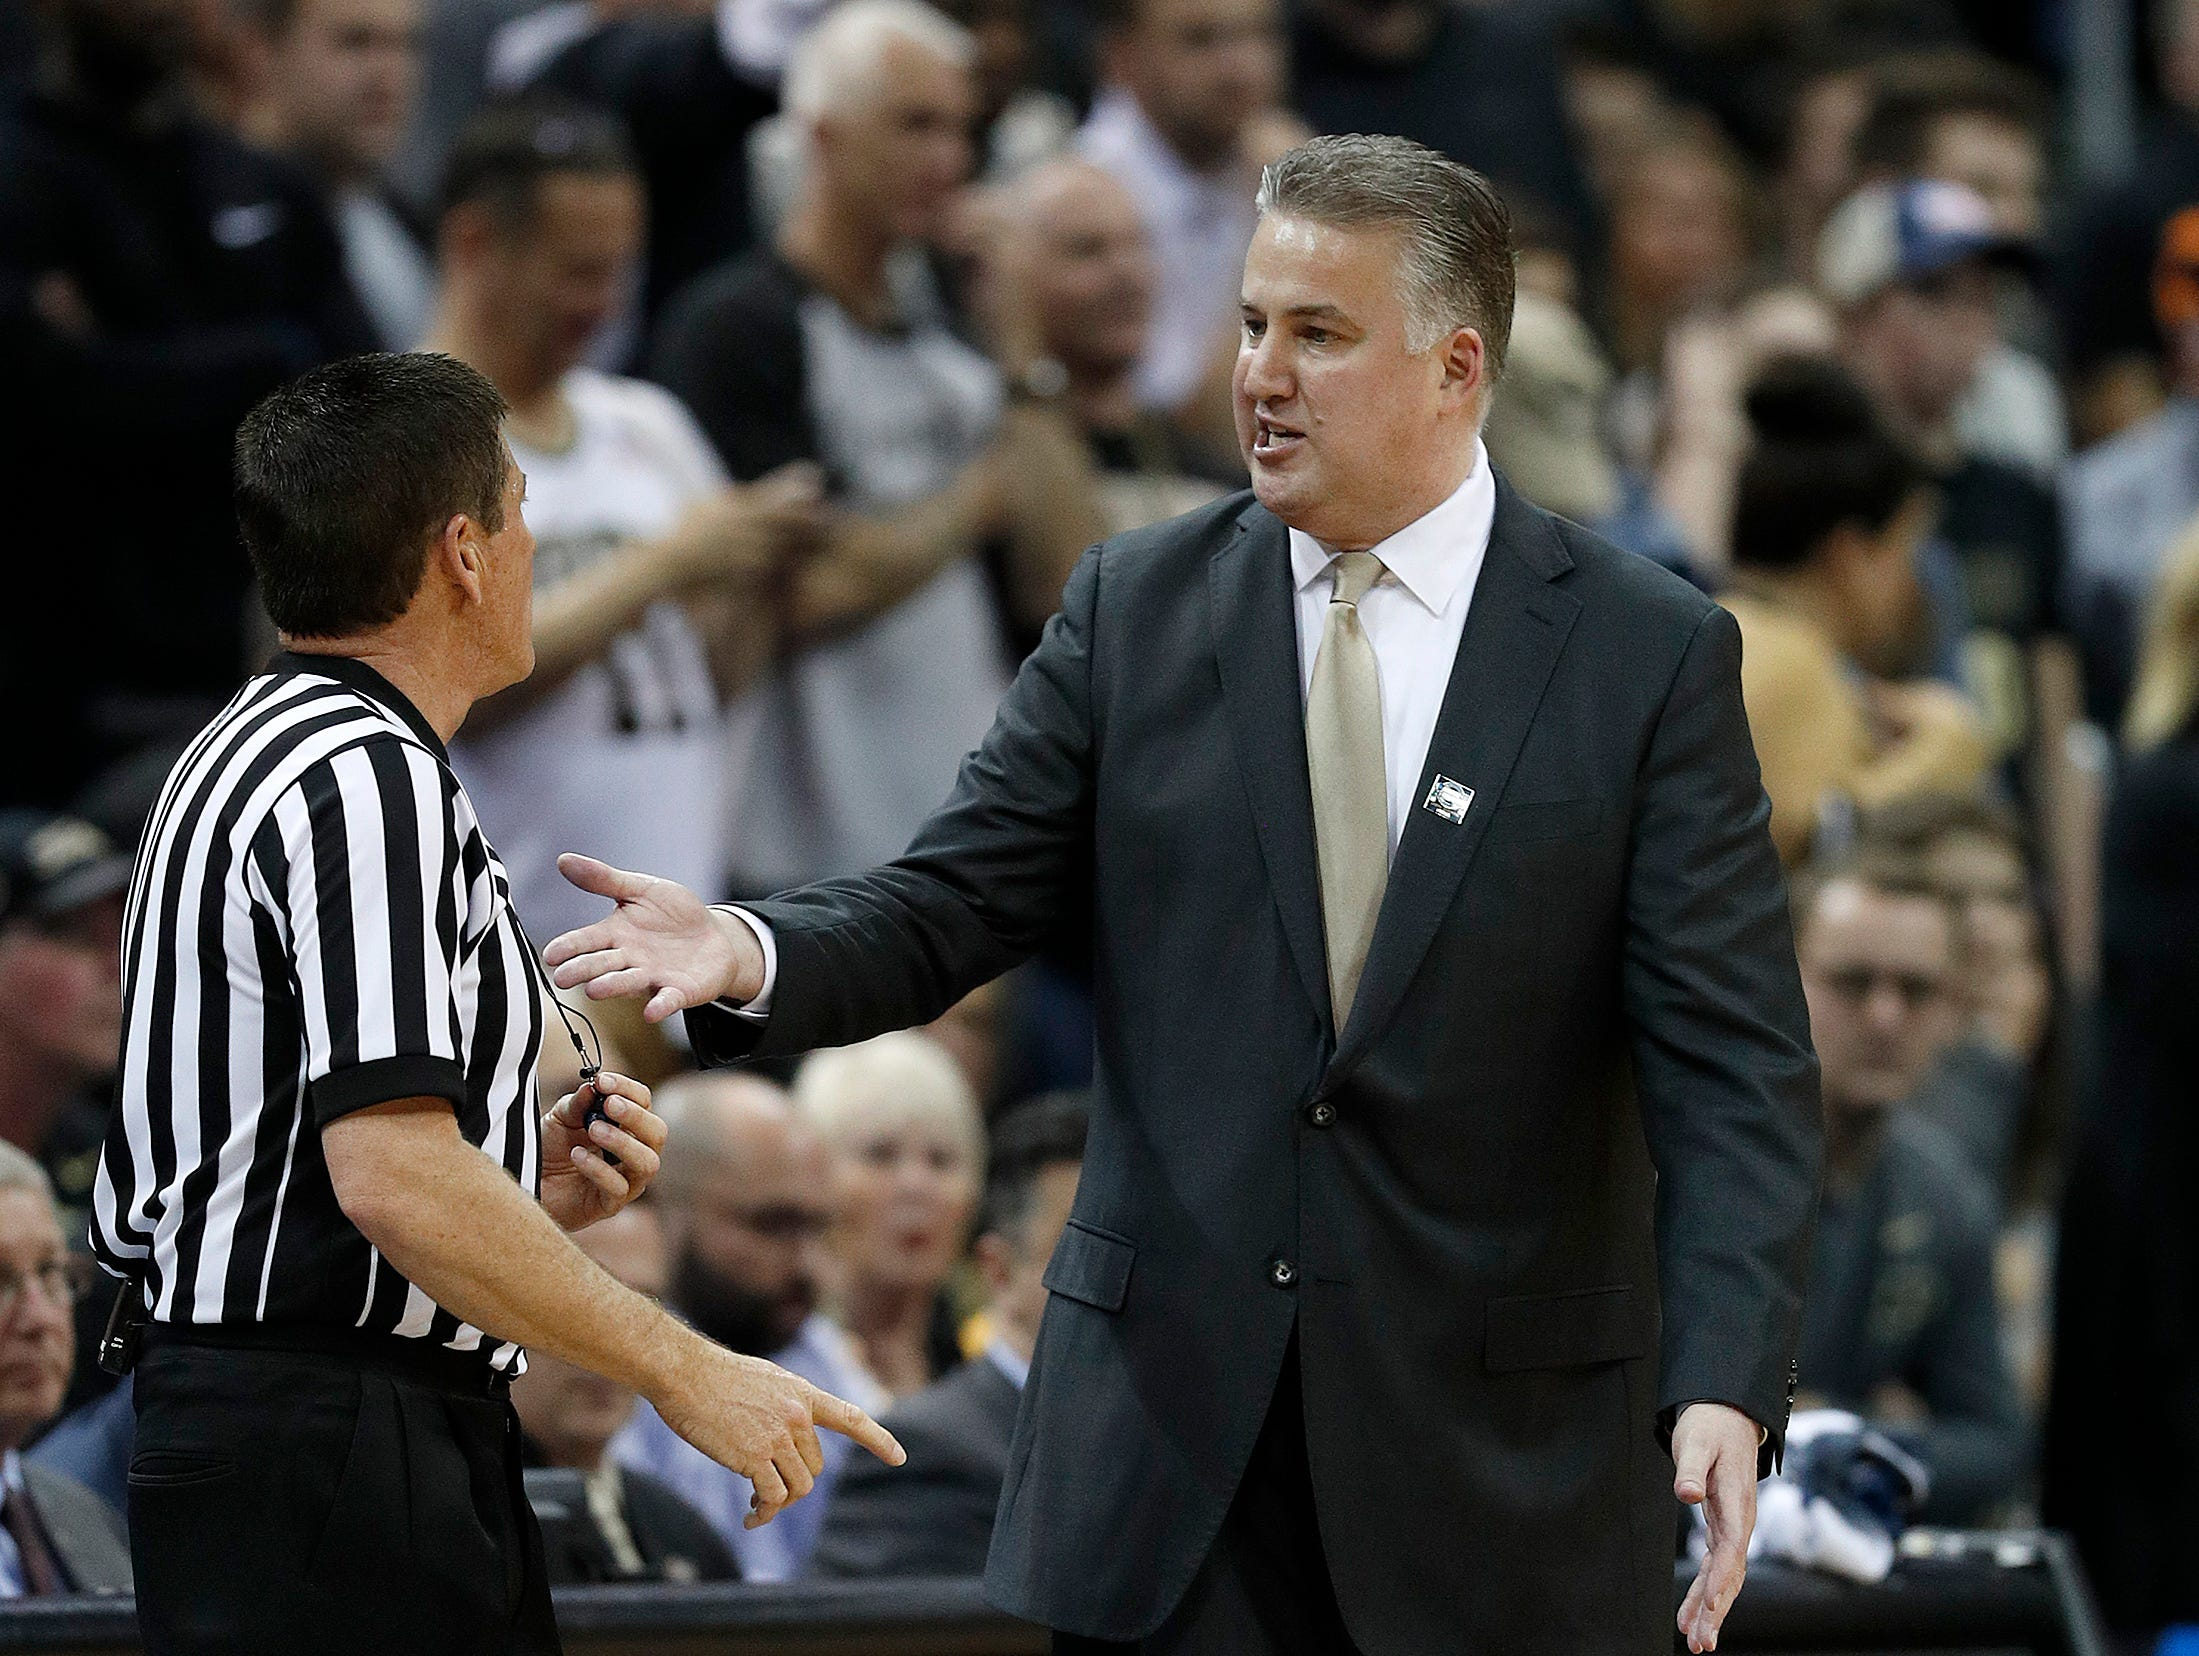 """Purdue Boilermakers head coach Matt Painter argues a call with an official in the first half of their NCAA Division I Basketball Championship """"Elite 8"""" basketball game at the KFC Yum! Center in Louisville, KY., on Saturday, Mar 30, 2019."""